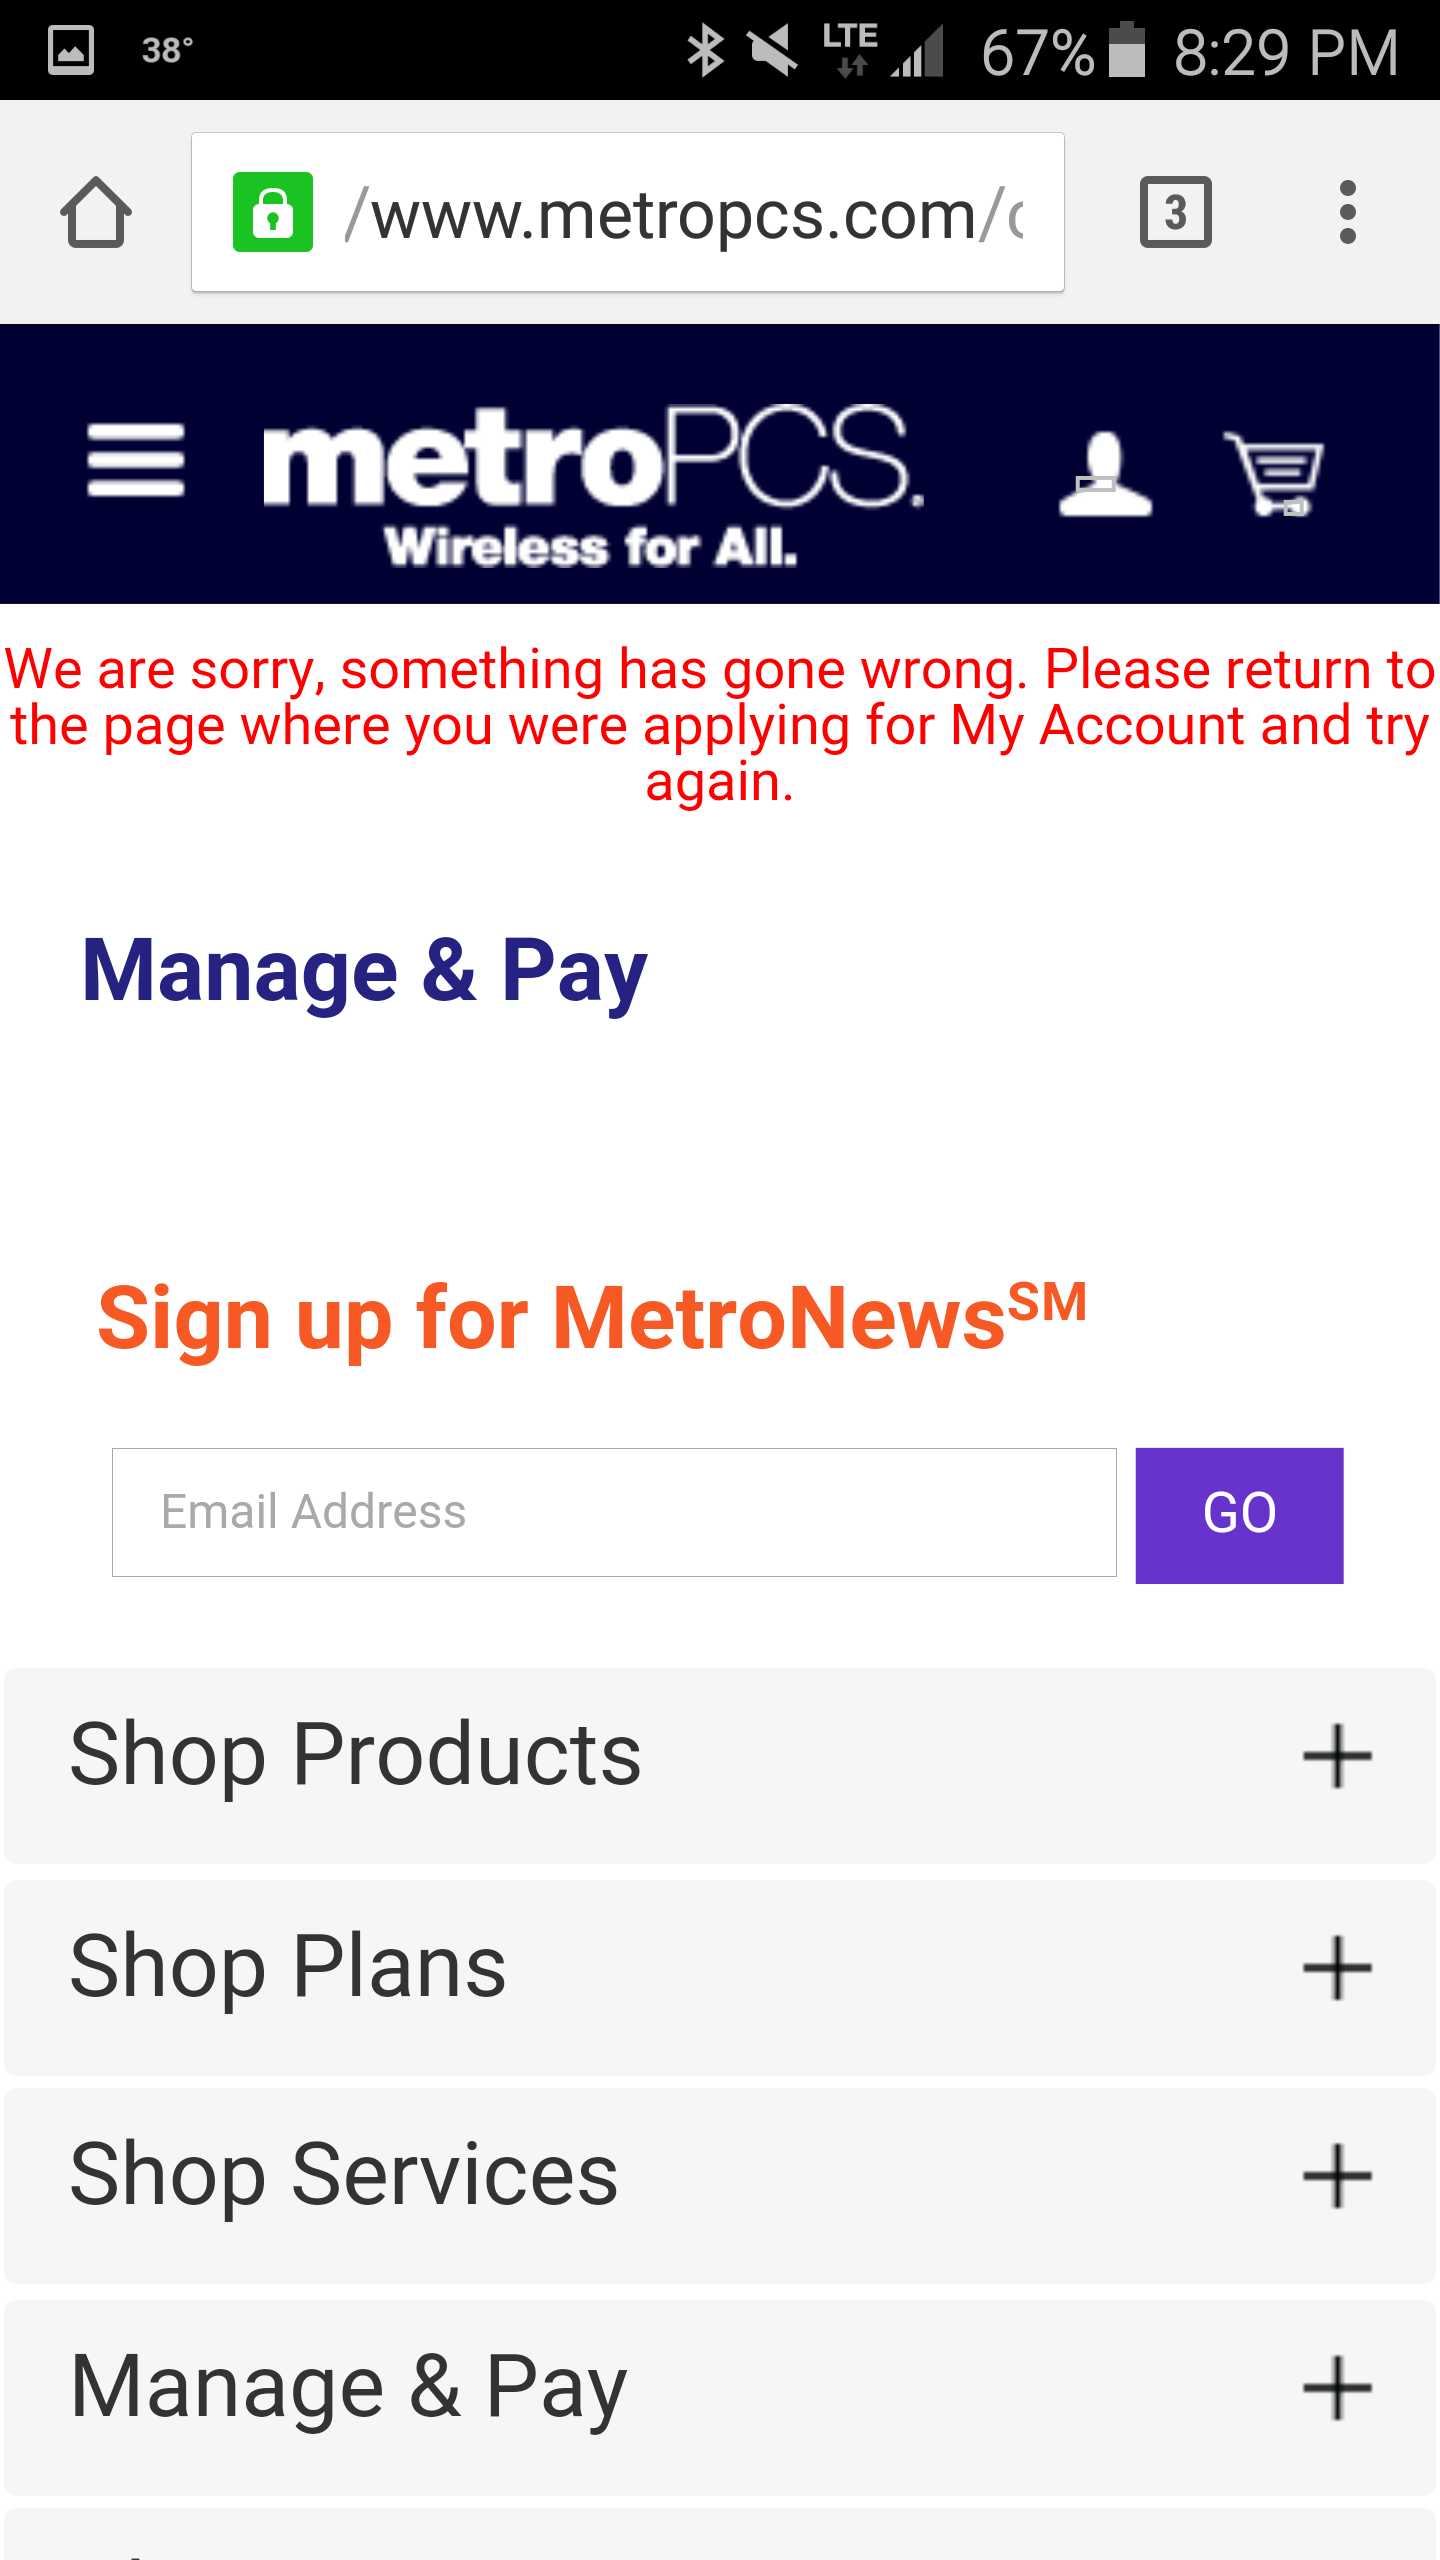 MetroPCS Problem with the metropcs website